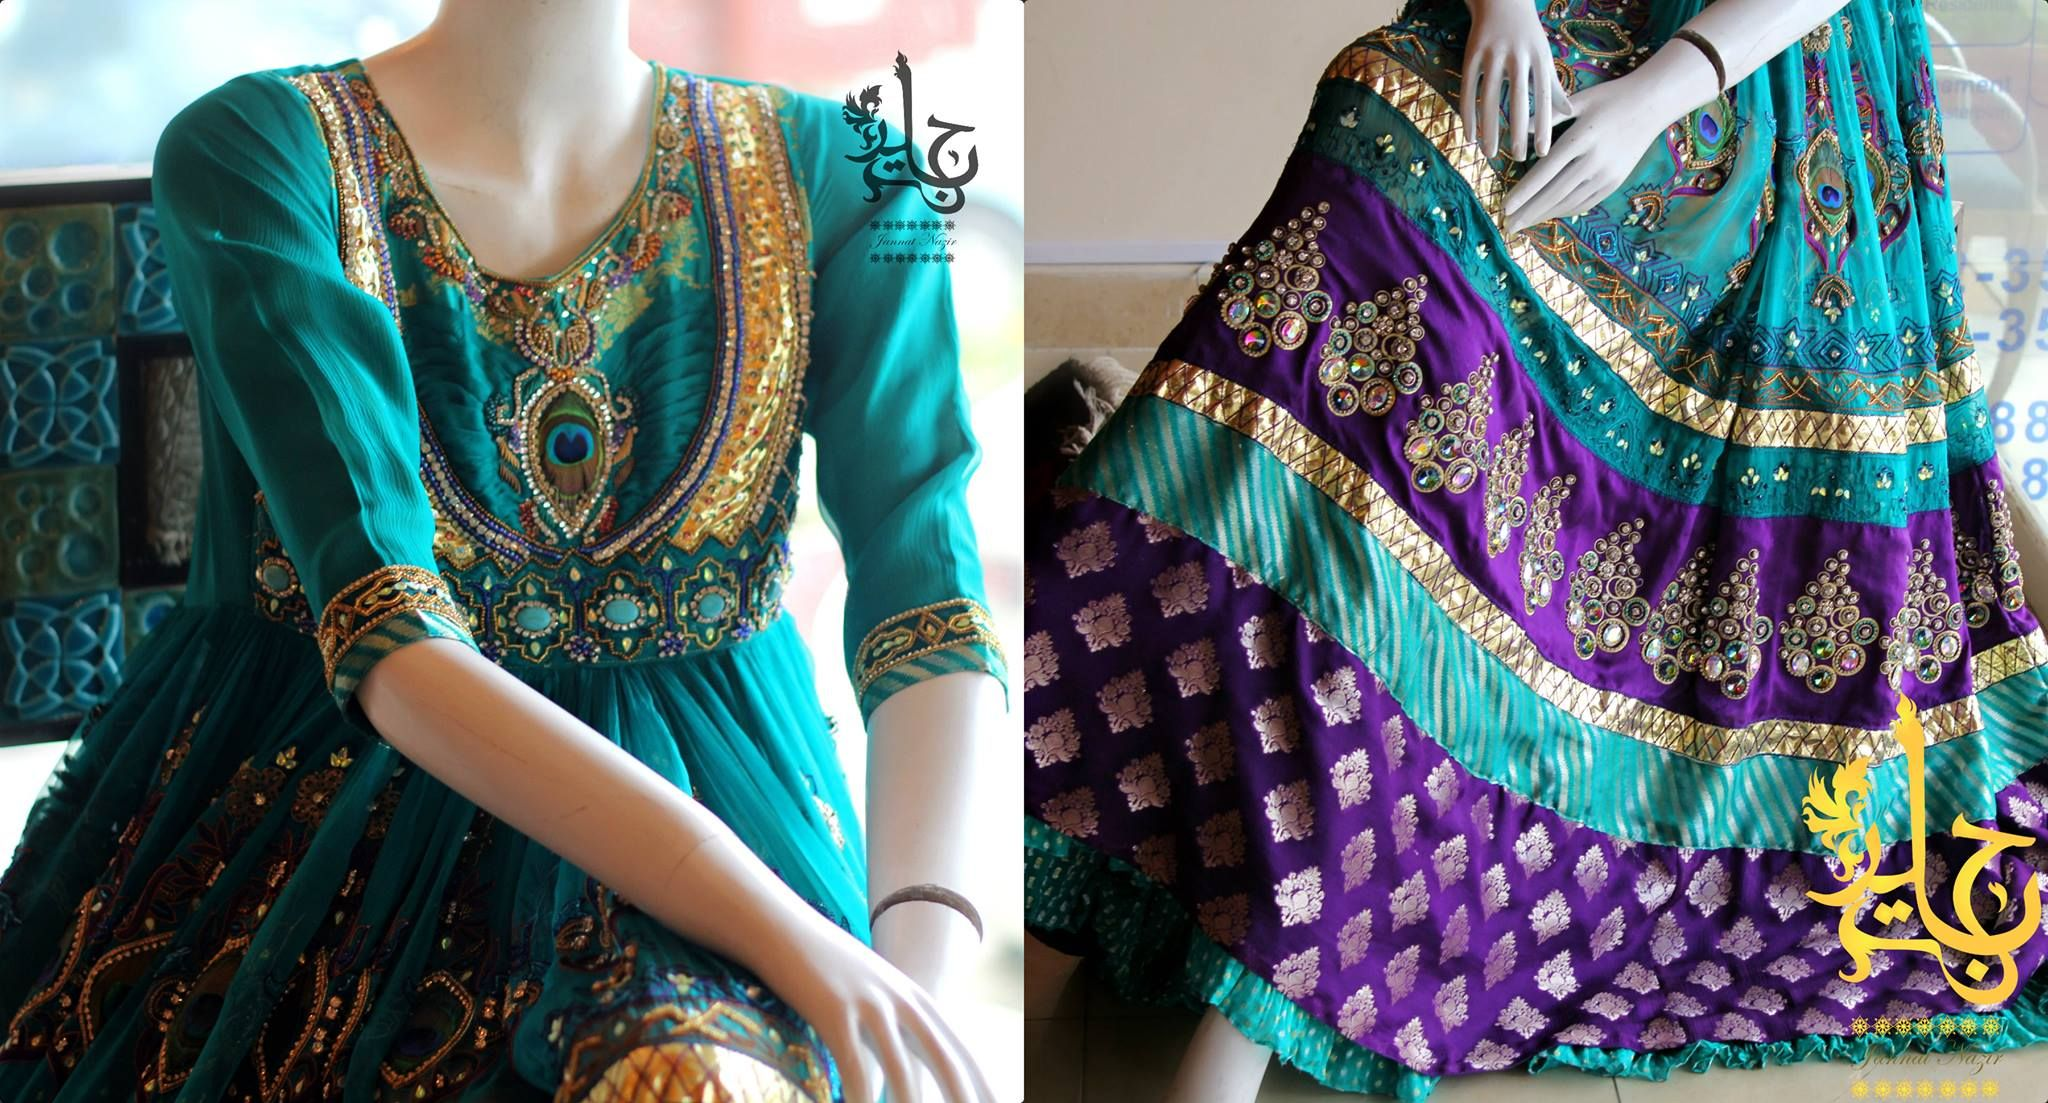 Pin by Sarasu S on Sewing Room and Embroidery works   Pinterest ...